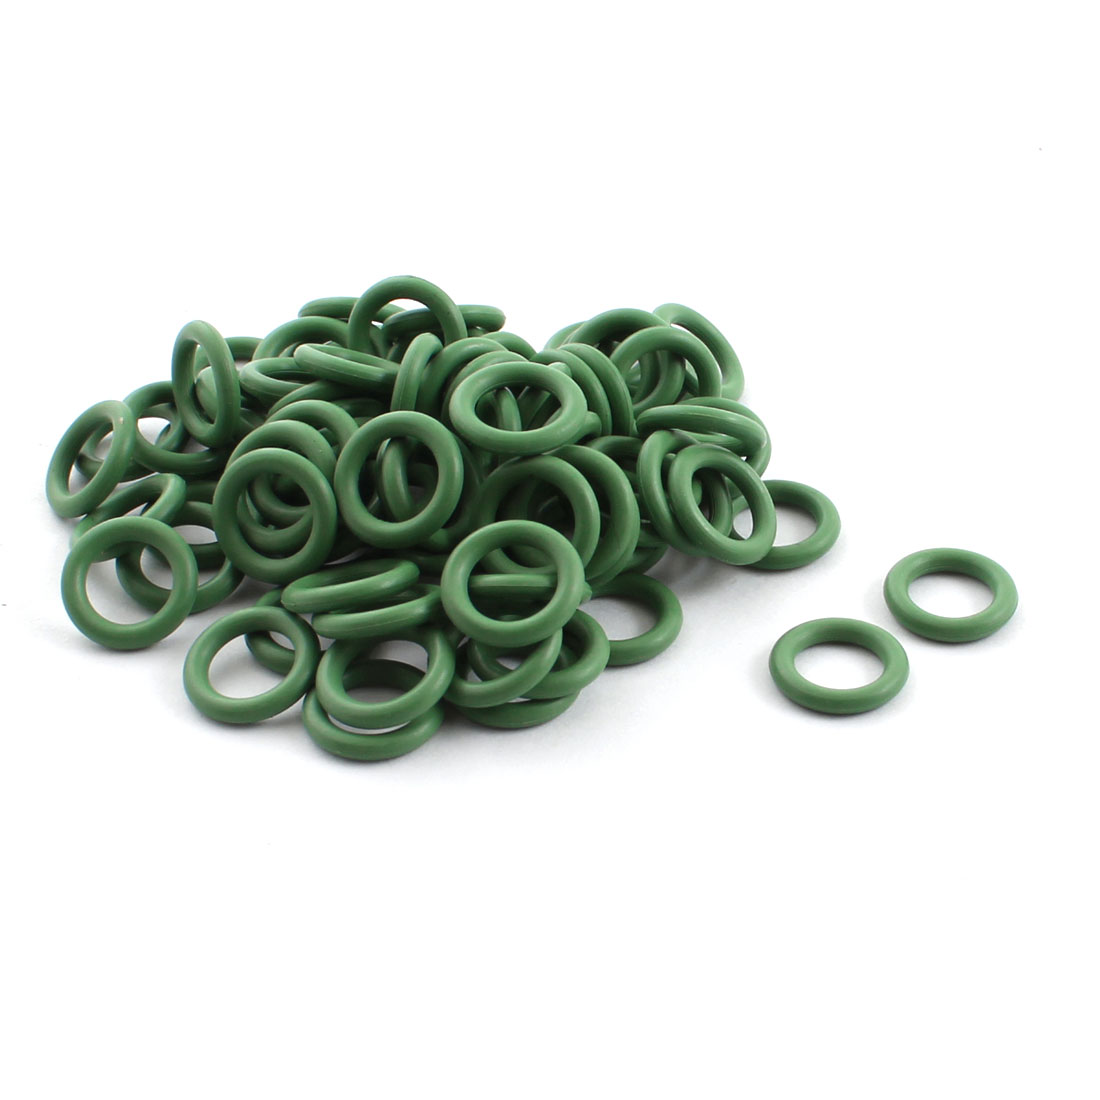 100 Pcs Green Rubber 10.6mm x 6.8mm x 1.9mm Oil Seal O Rings Gaskets Washers